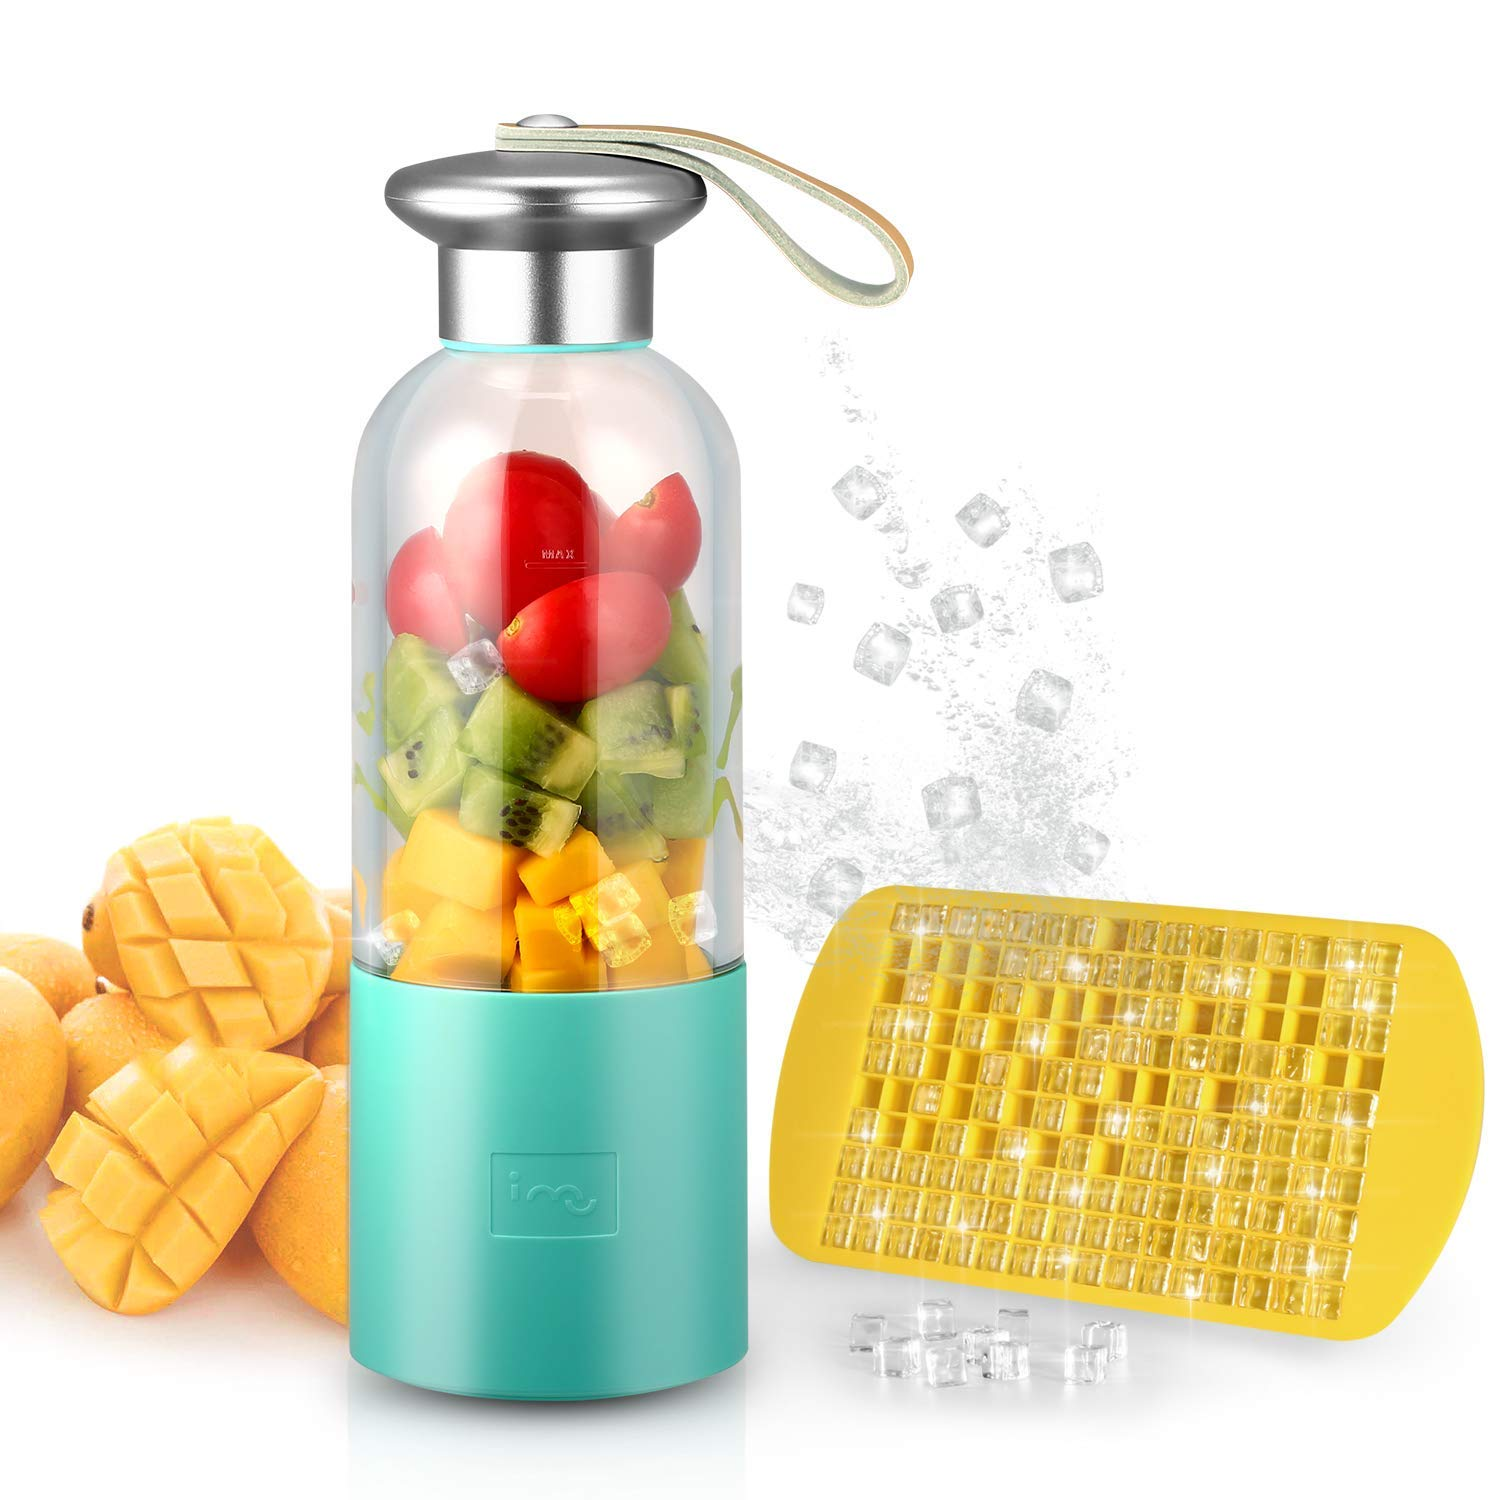 SANQ Portable Smoothie Blender Small Blender Usb Rechargeable Single Served For Shakes And Smoothies, Fruit Mixer Machine For SANQ Portable Smoothie Blender Small Blender Usb Rechargeable Single Served For Shakes And Smoothies, Fruit Mixer Machine For